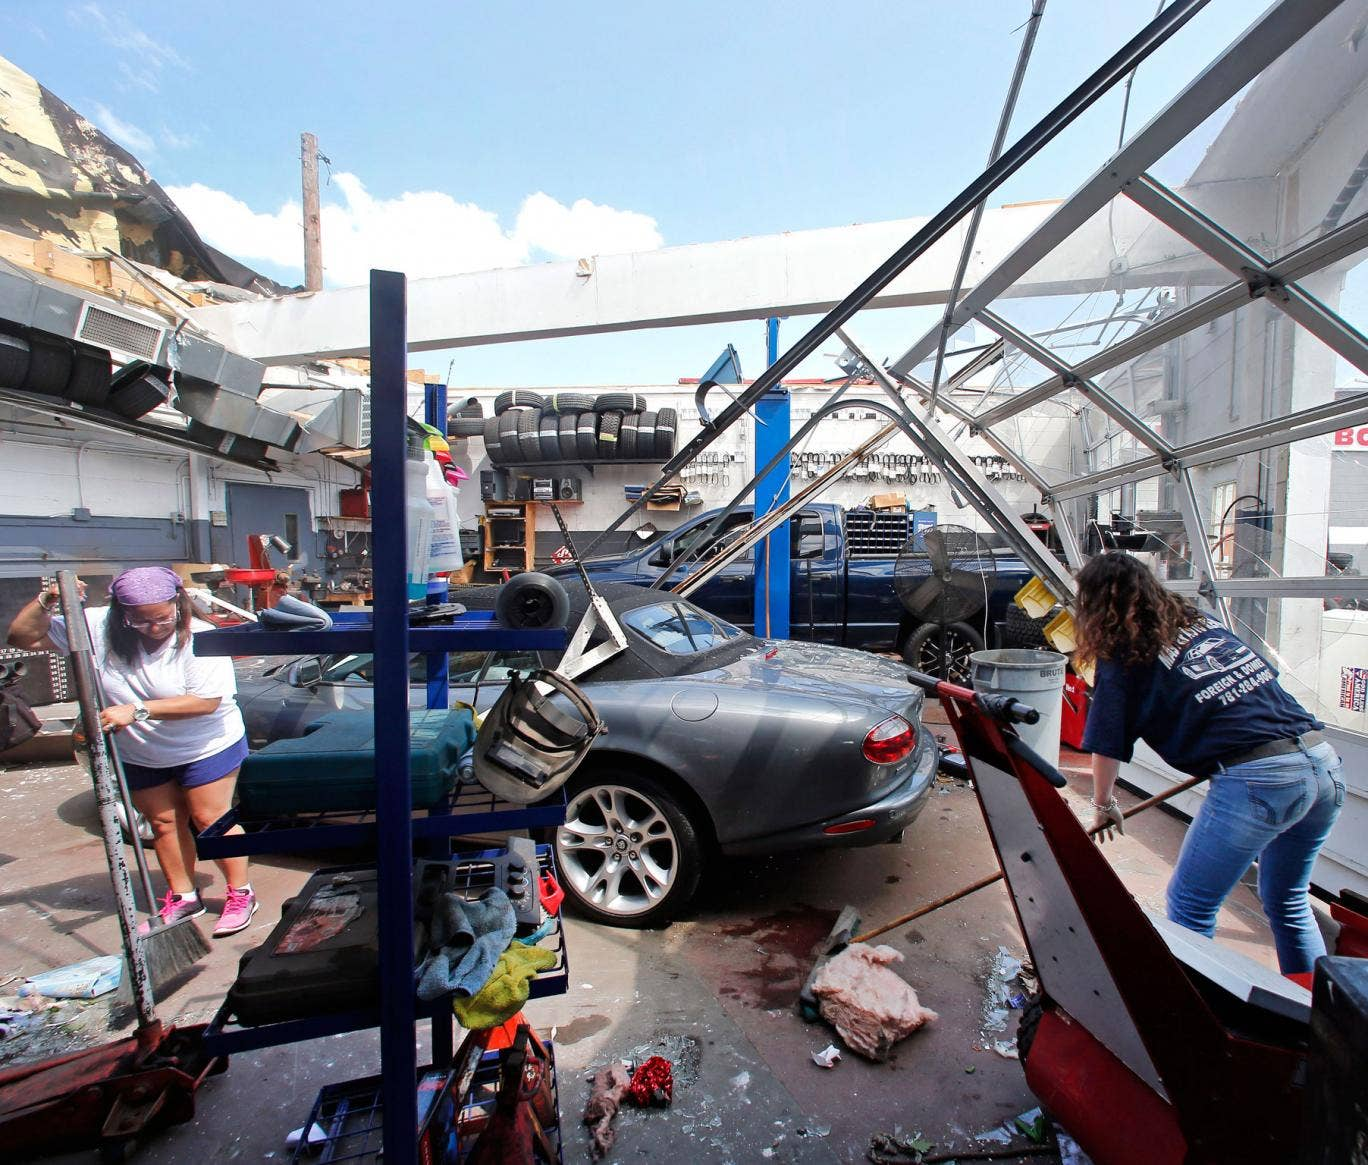 Master Auto manager Marie Annaloro, left, and Victoria Ohlson,right, sweep glass and debris in the service garage where the roof blew off in Revere, Mass